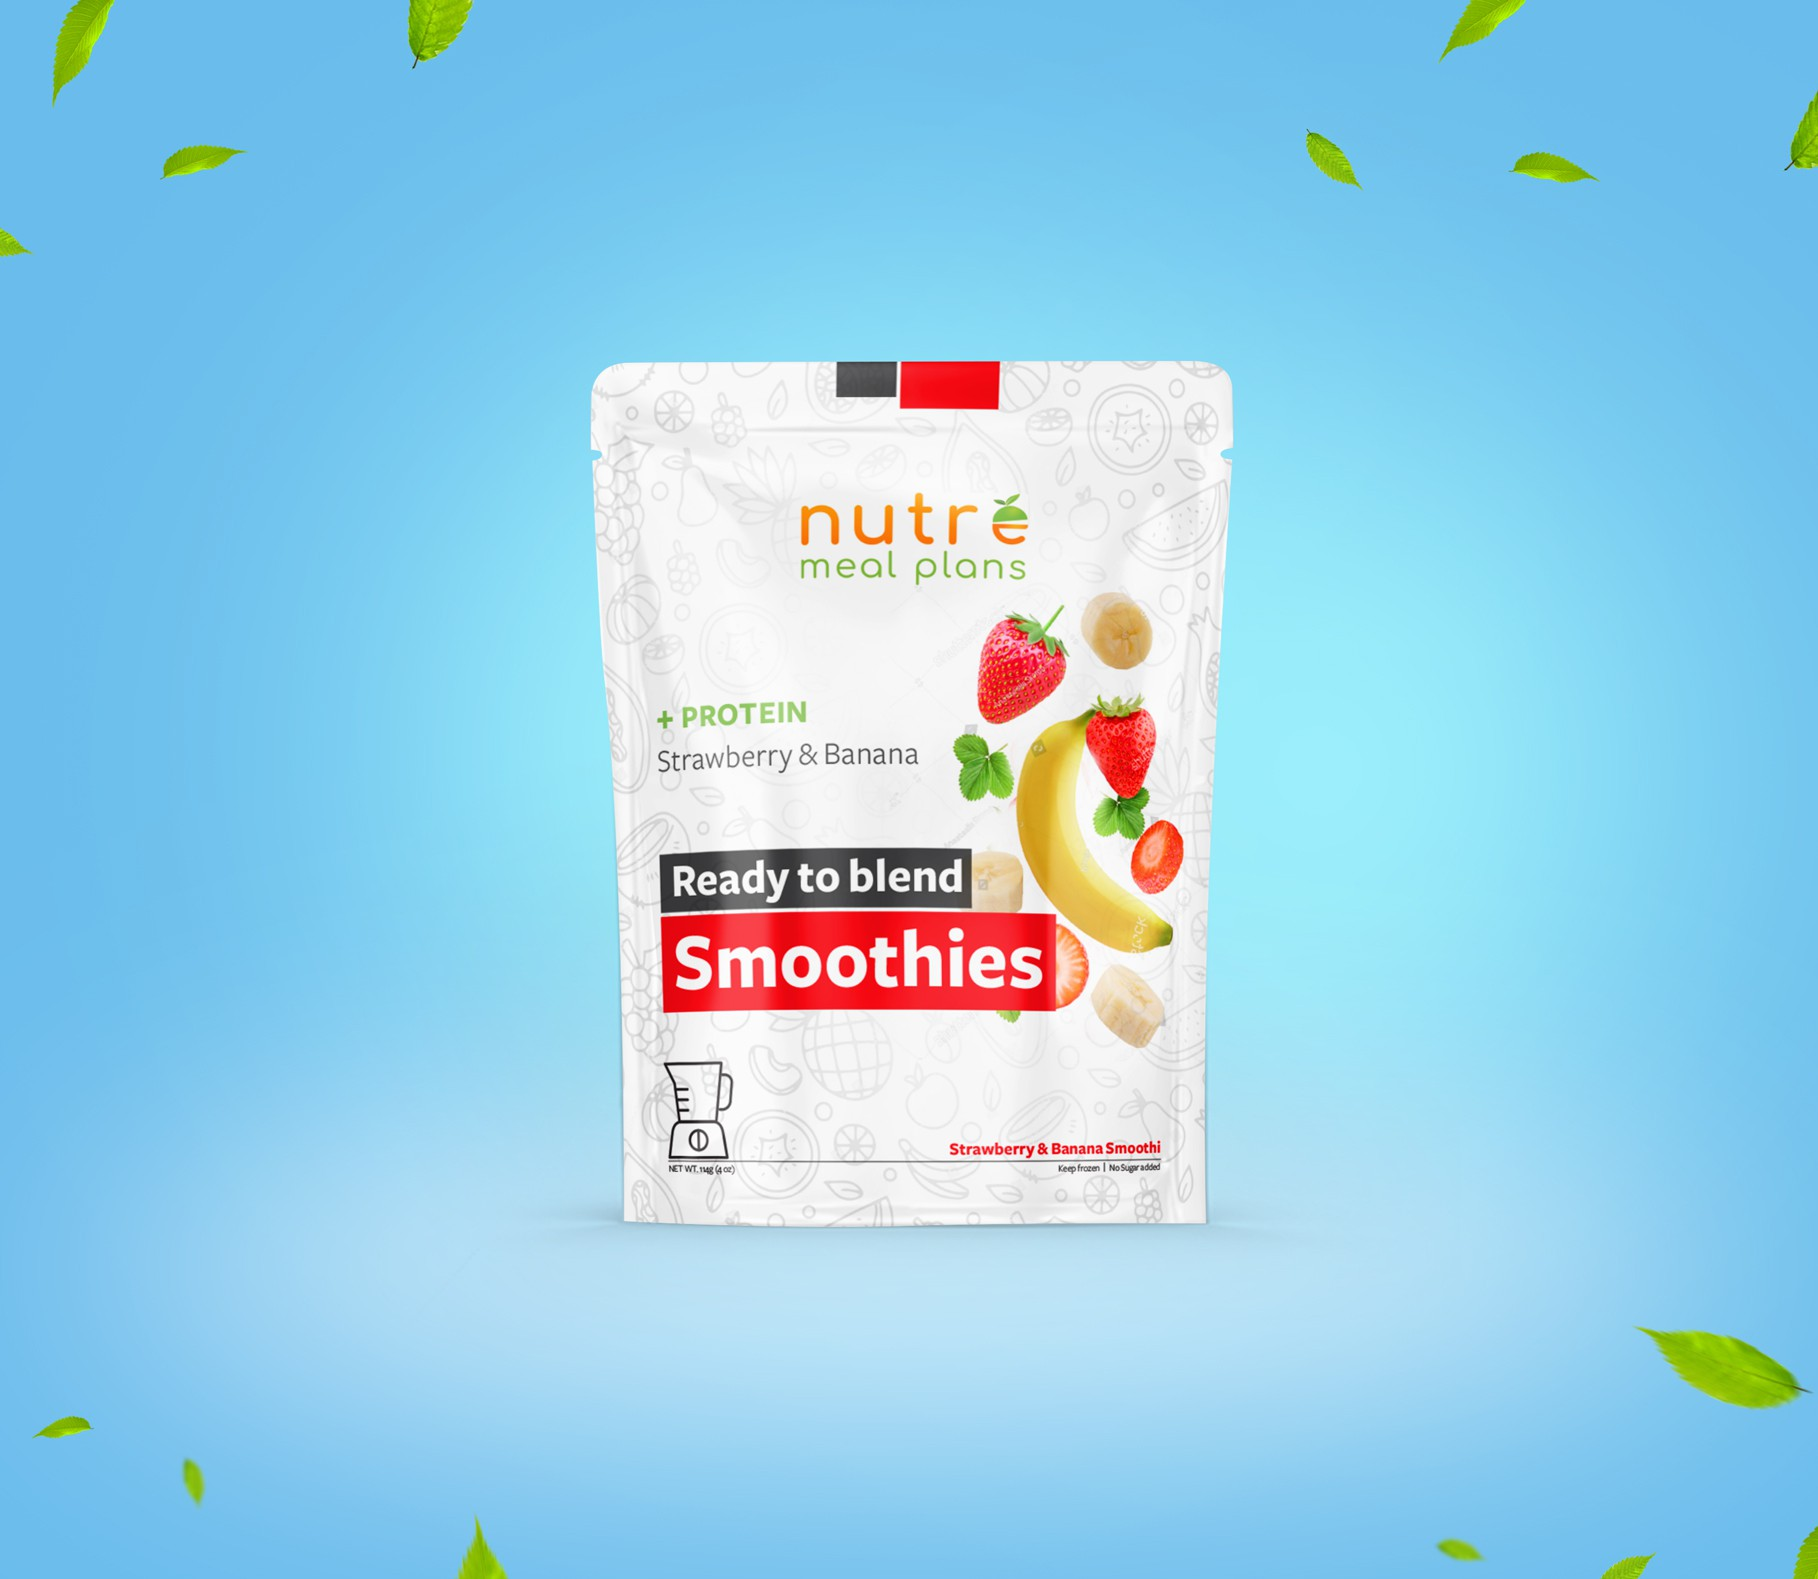 Nutre Ready Made Smoothies Packaging